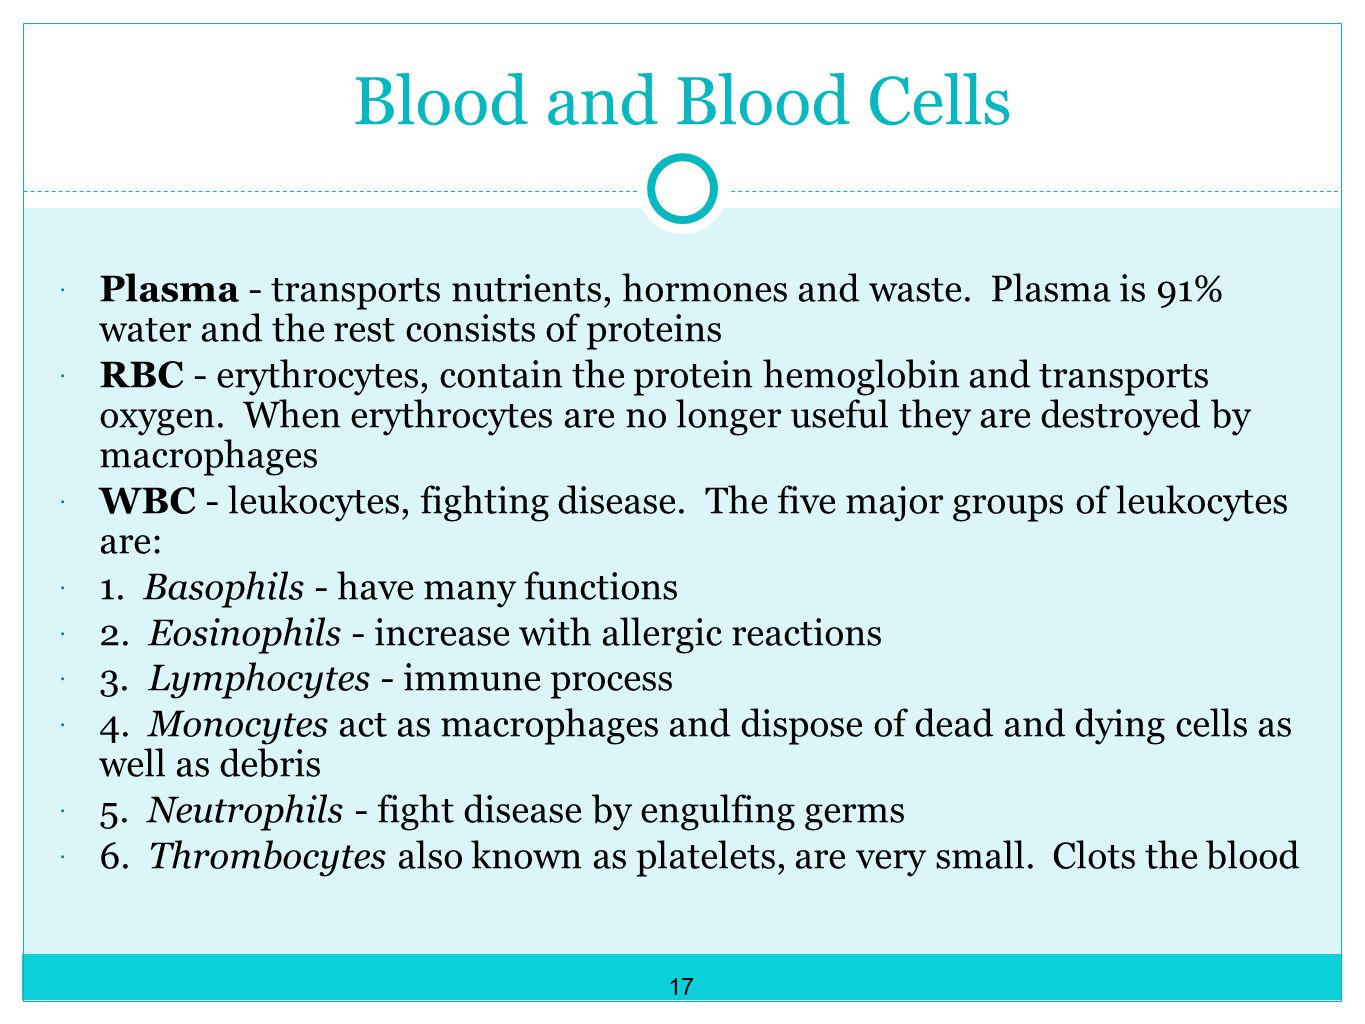 Blood and Blood Cells Plasma - transports nutrients, hormones and waste. Plasma is 91% water and the rest consists of proteins.